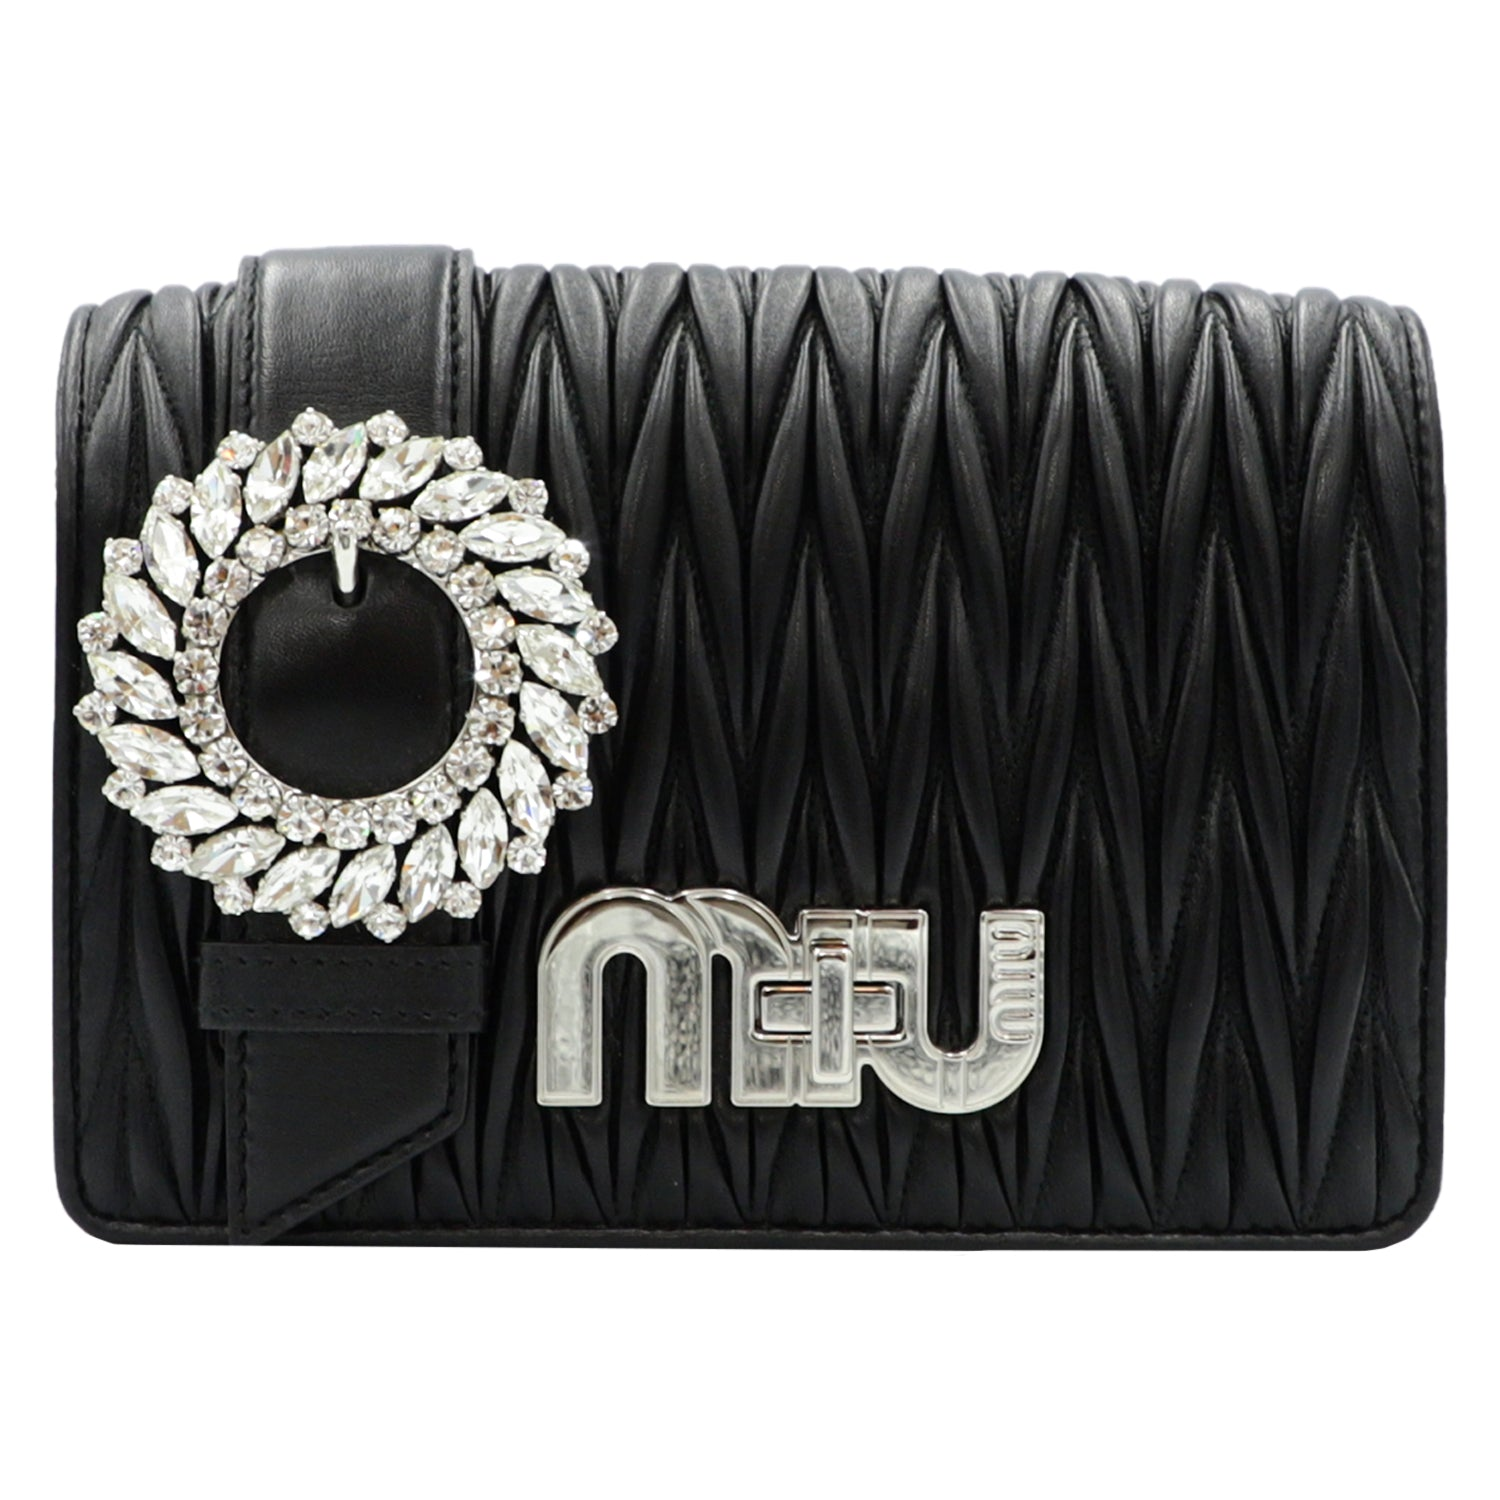 My Miu Miu Black Clutch Bag  | Shop MIU MIU Online India